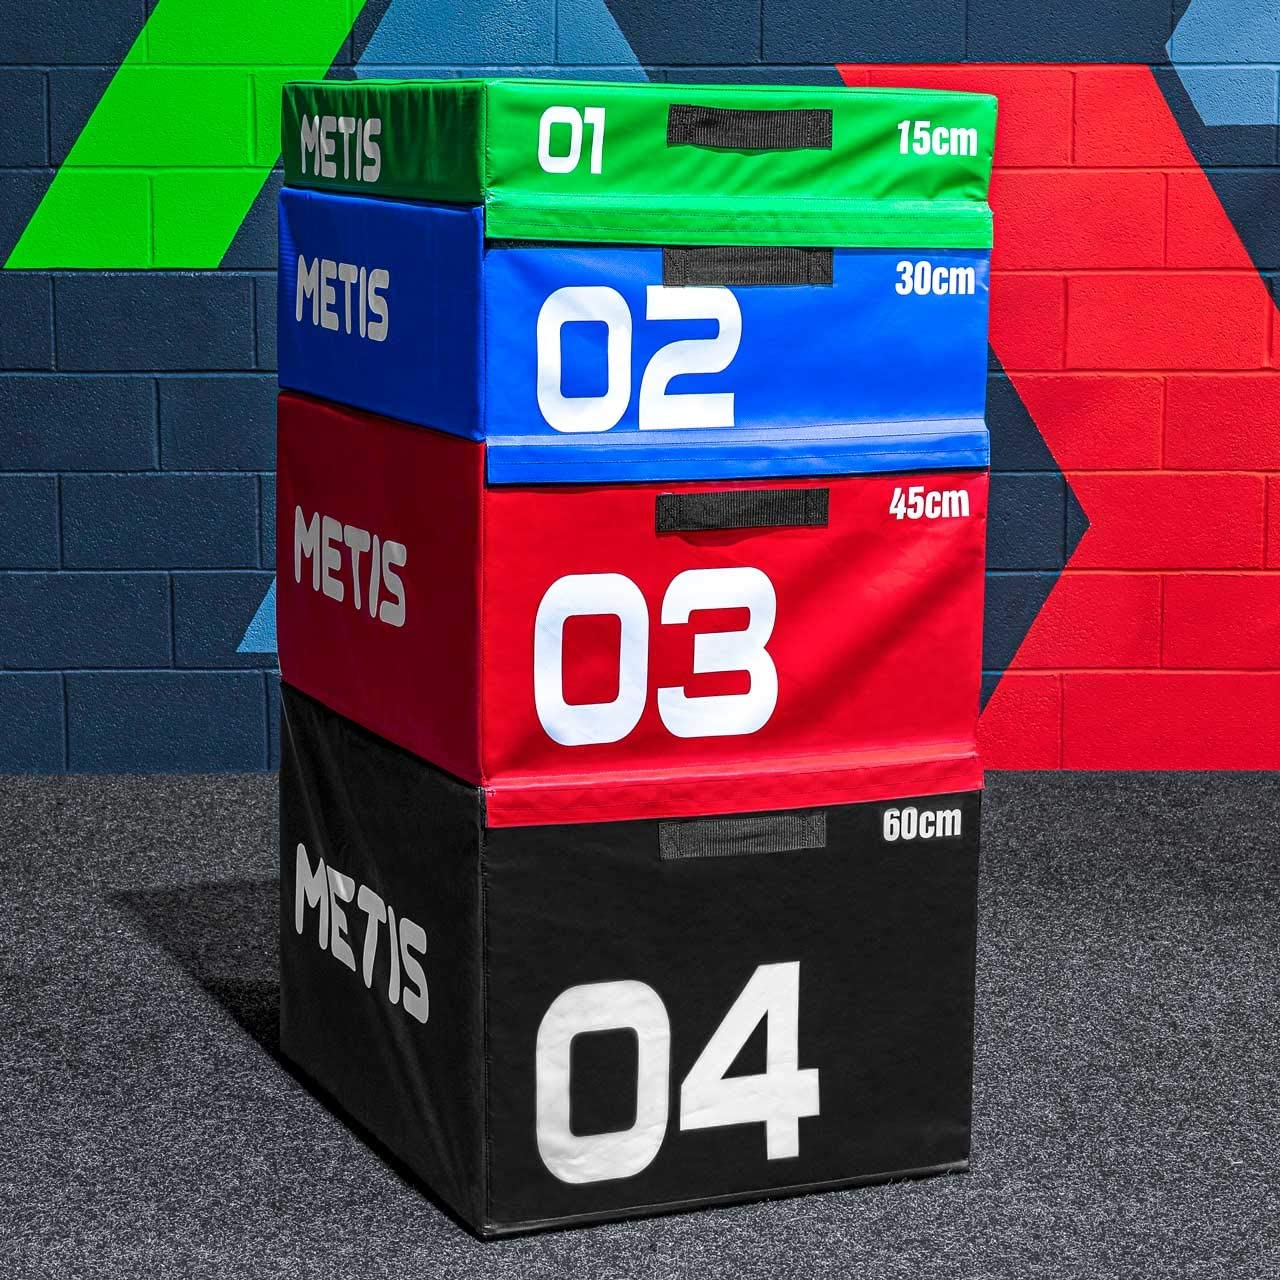 METIS Plyometric Jump Box Stackable Set Lowest price challenge Home Plyo Gym - Max 52% OFF